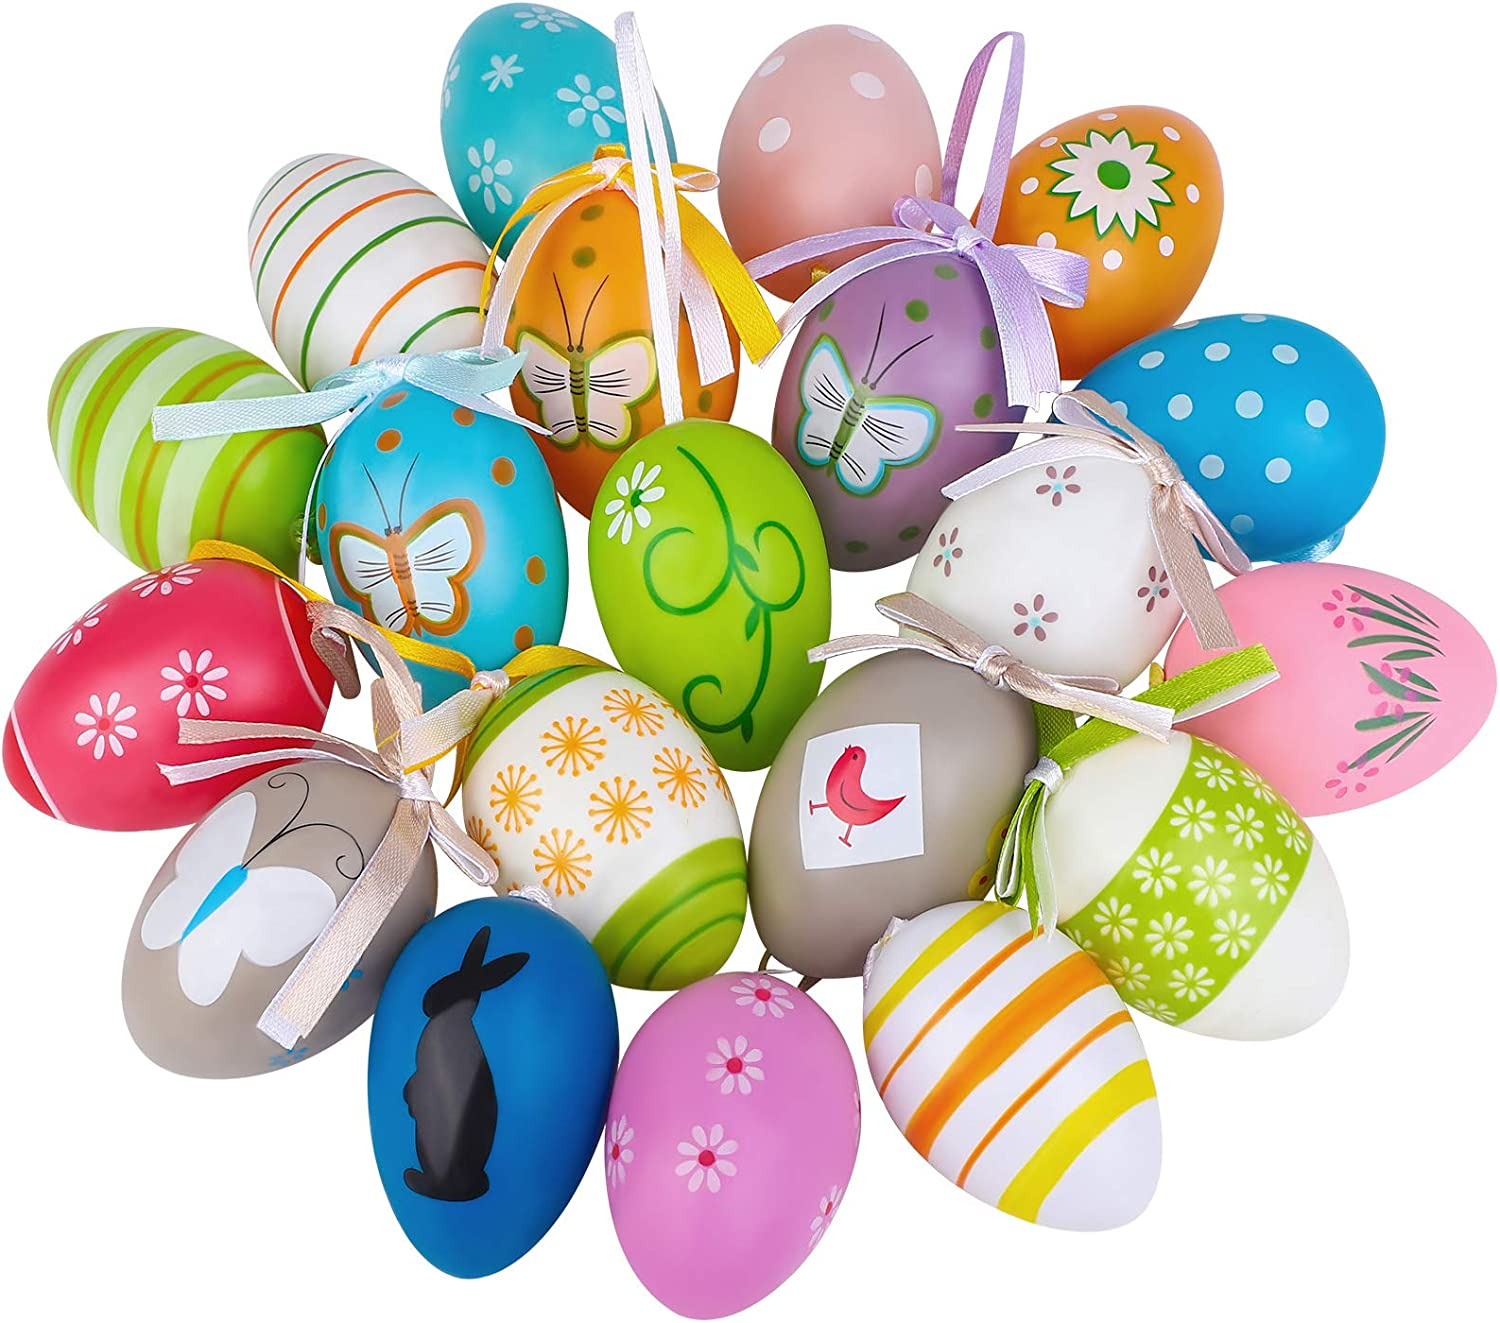 ADXCO 21 Pieces Colorful Easter Eggs Easter Hanging Ornaments Easter Hanging Decorative Easter Eggs Painted for DIY Crafts Home Decorations, Random Styles